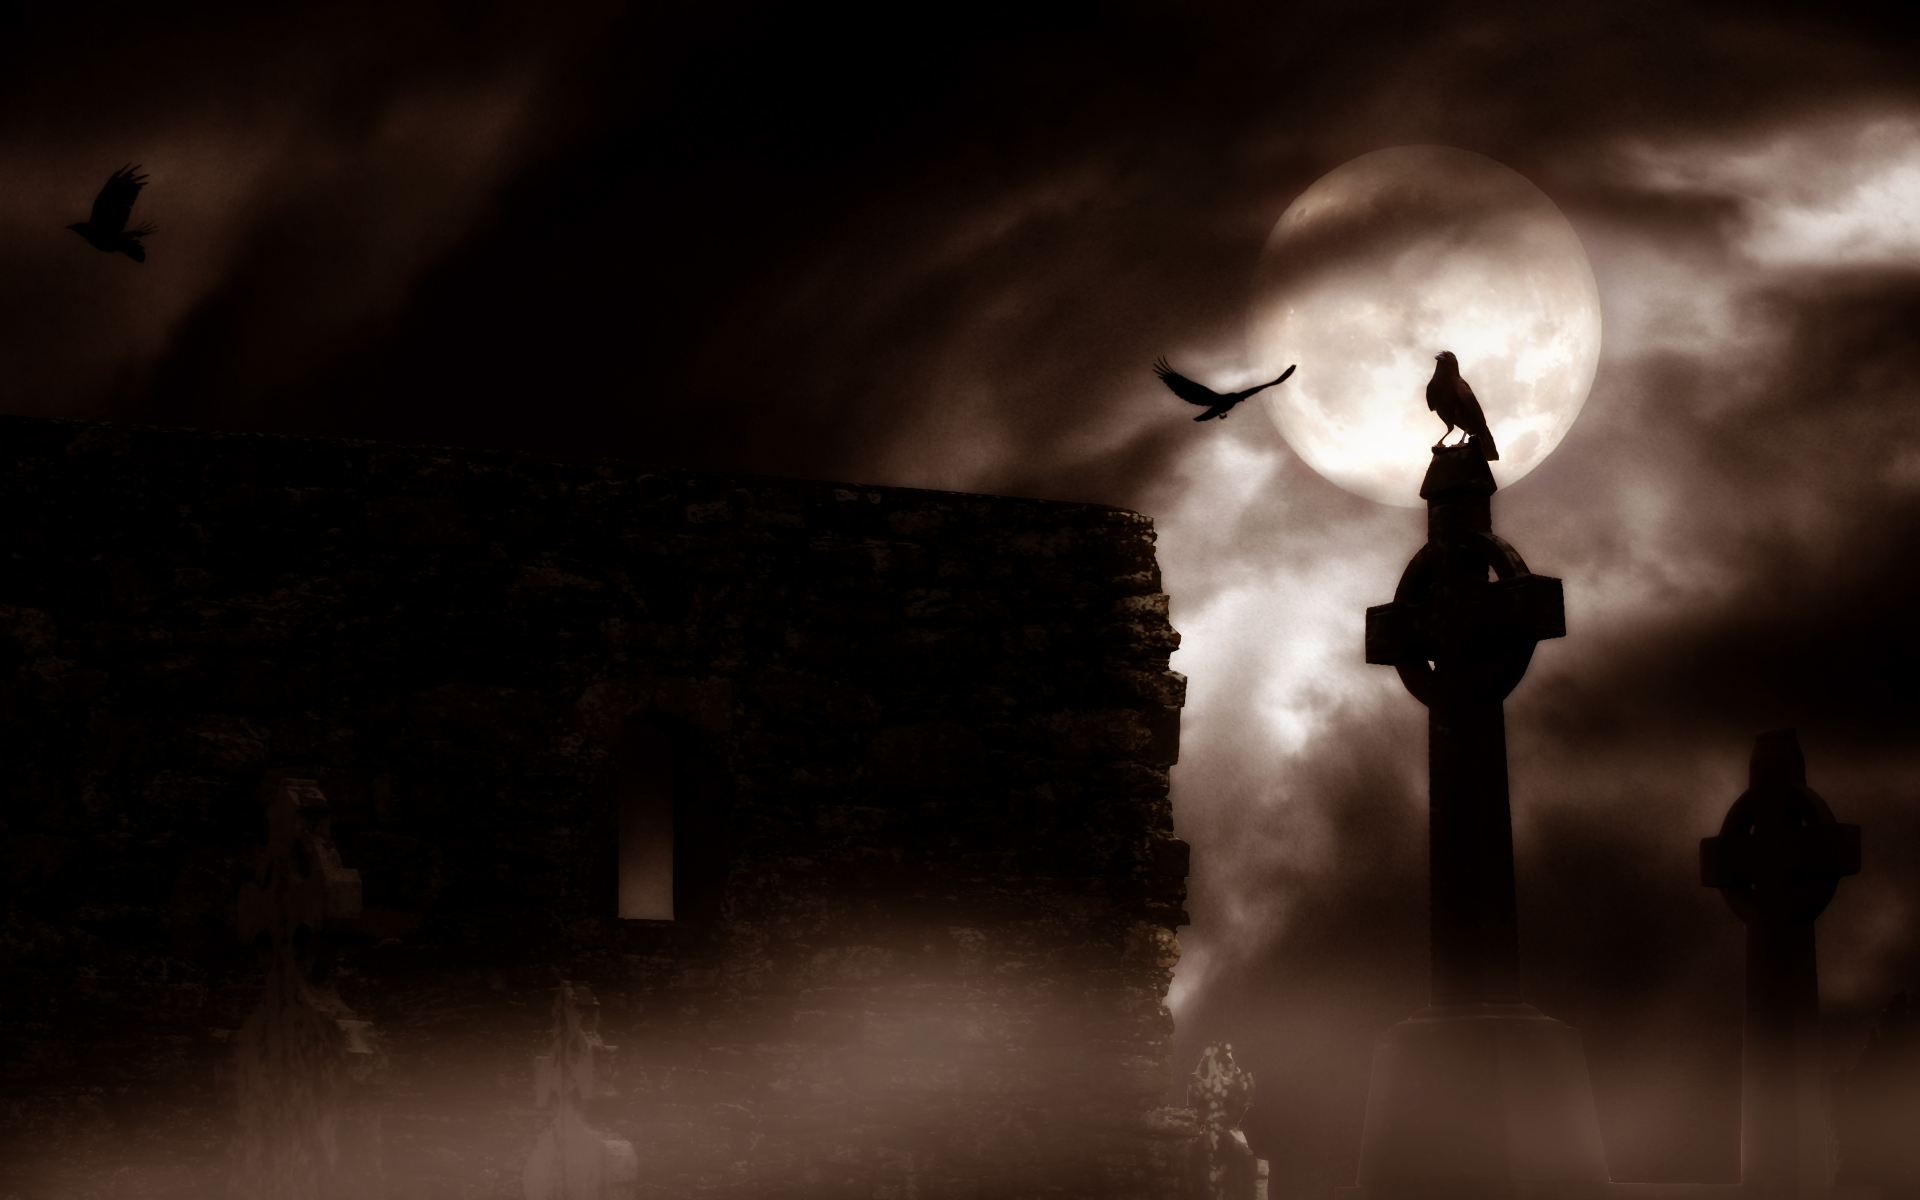 Dark Gothic Wallpaper